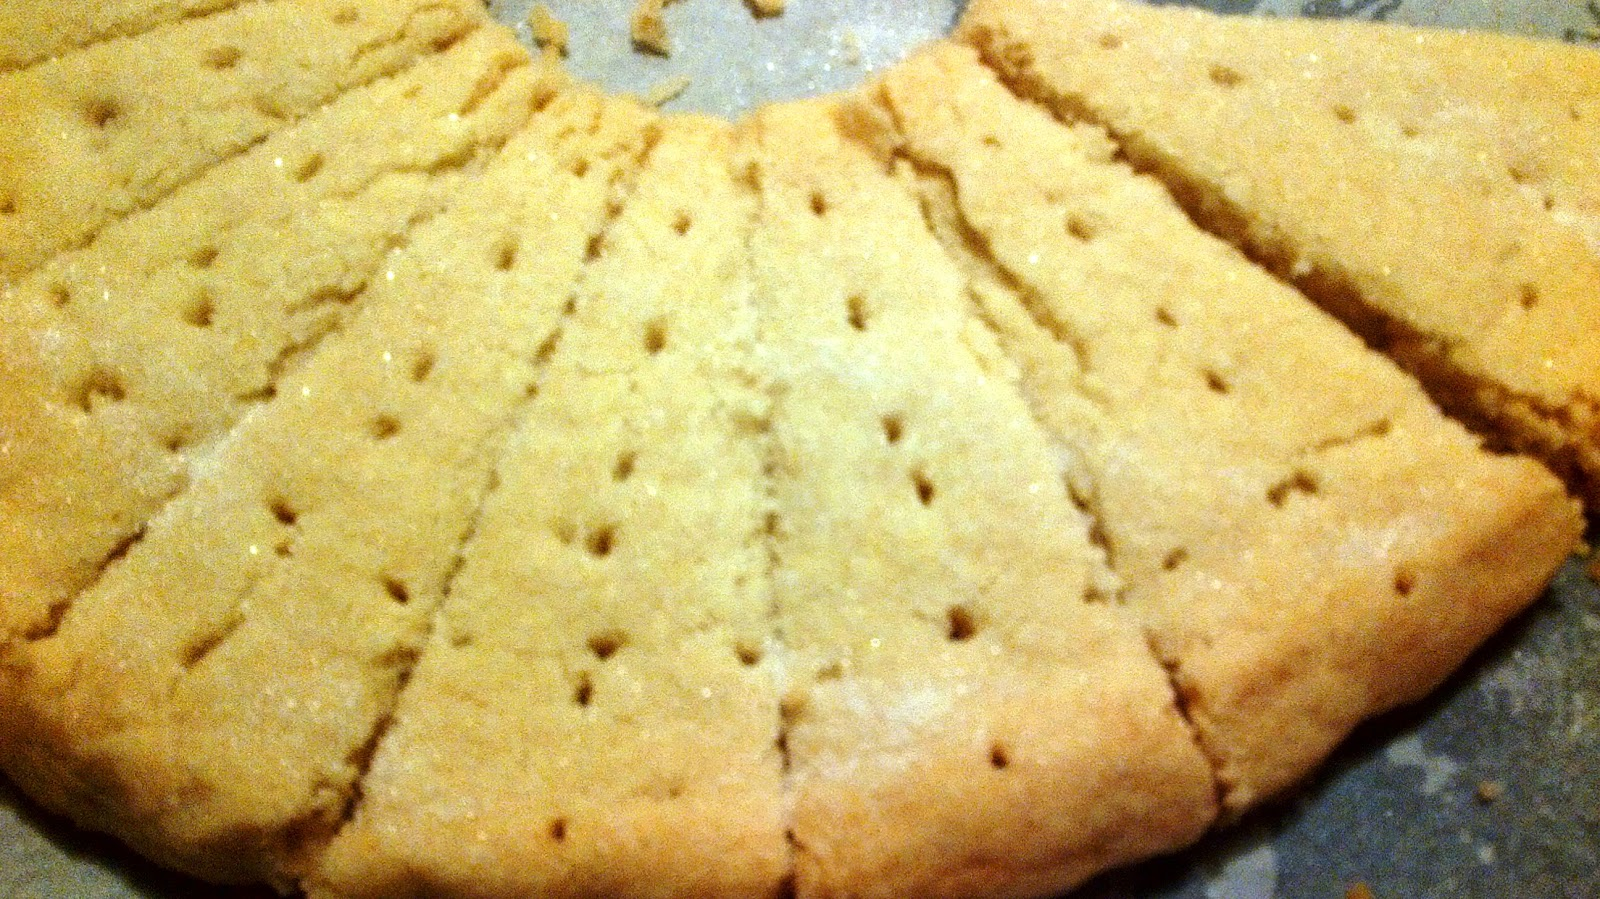 ... Kitchen: 'Tis the Season For Shortbread- Beautiful, Buttery Shortbread